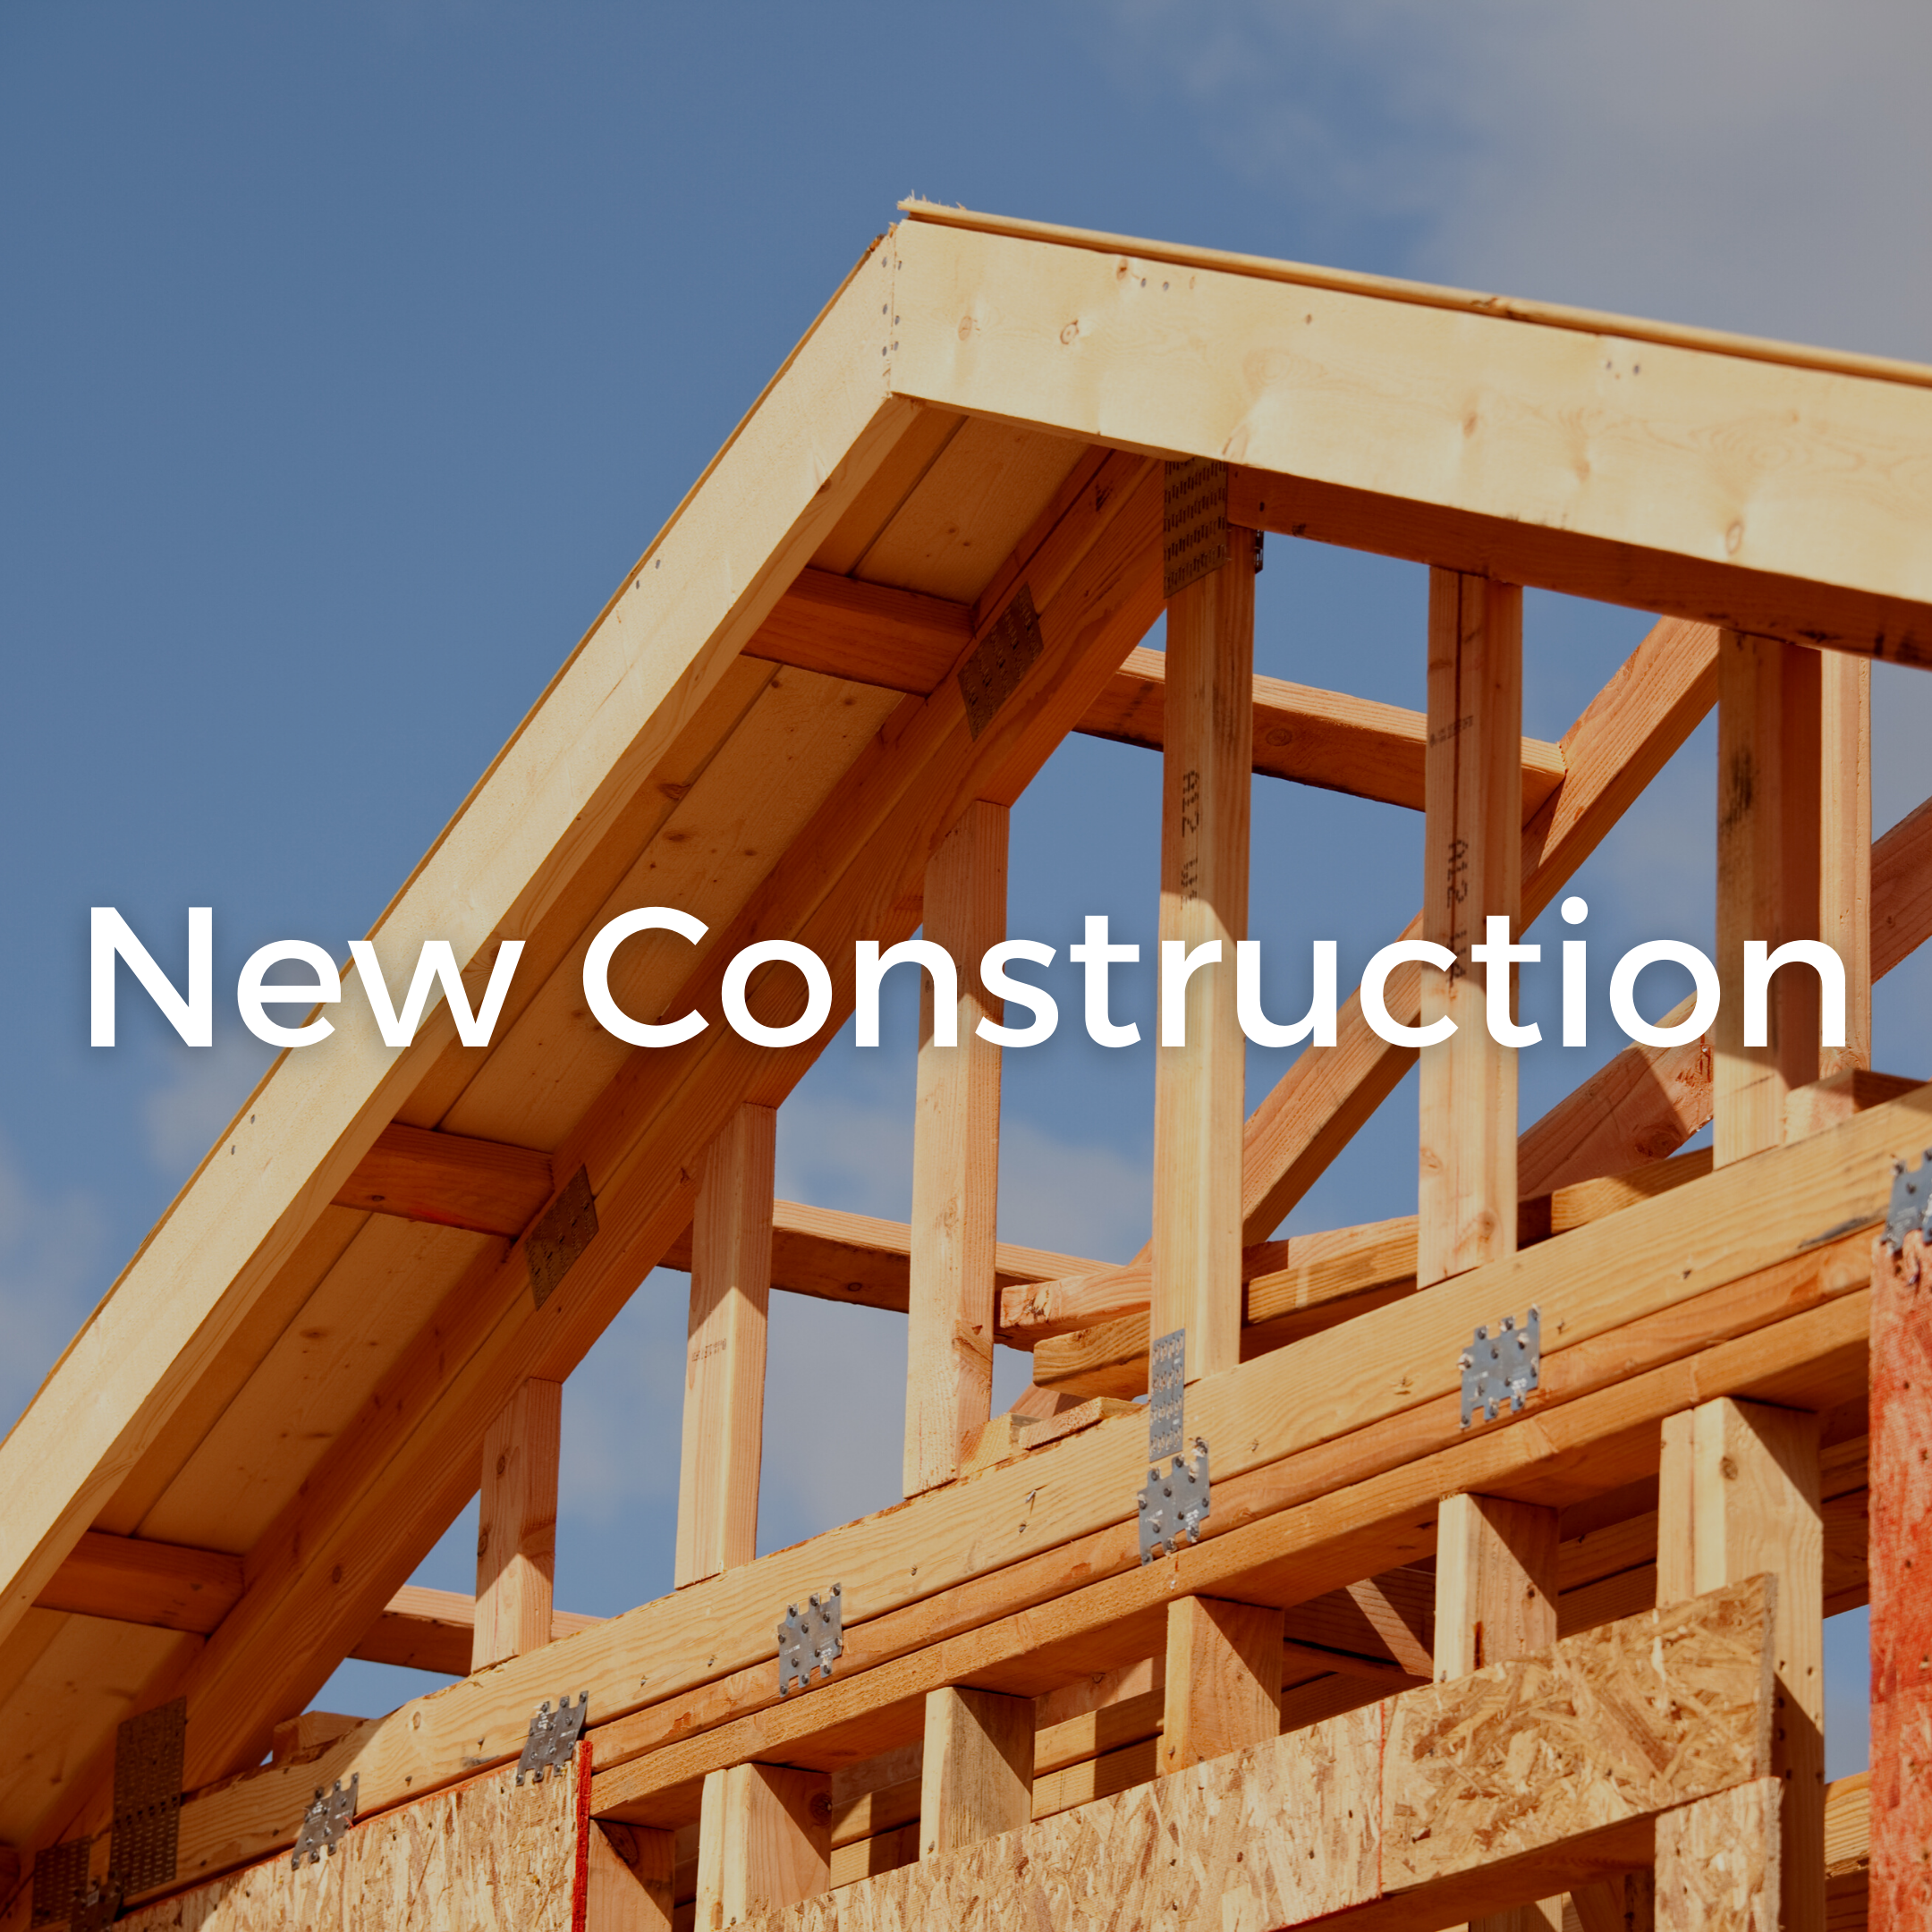 Windermere Whidbey Real Estate | New Construction